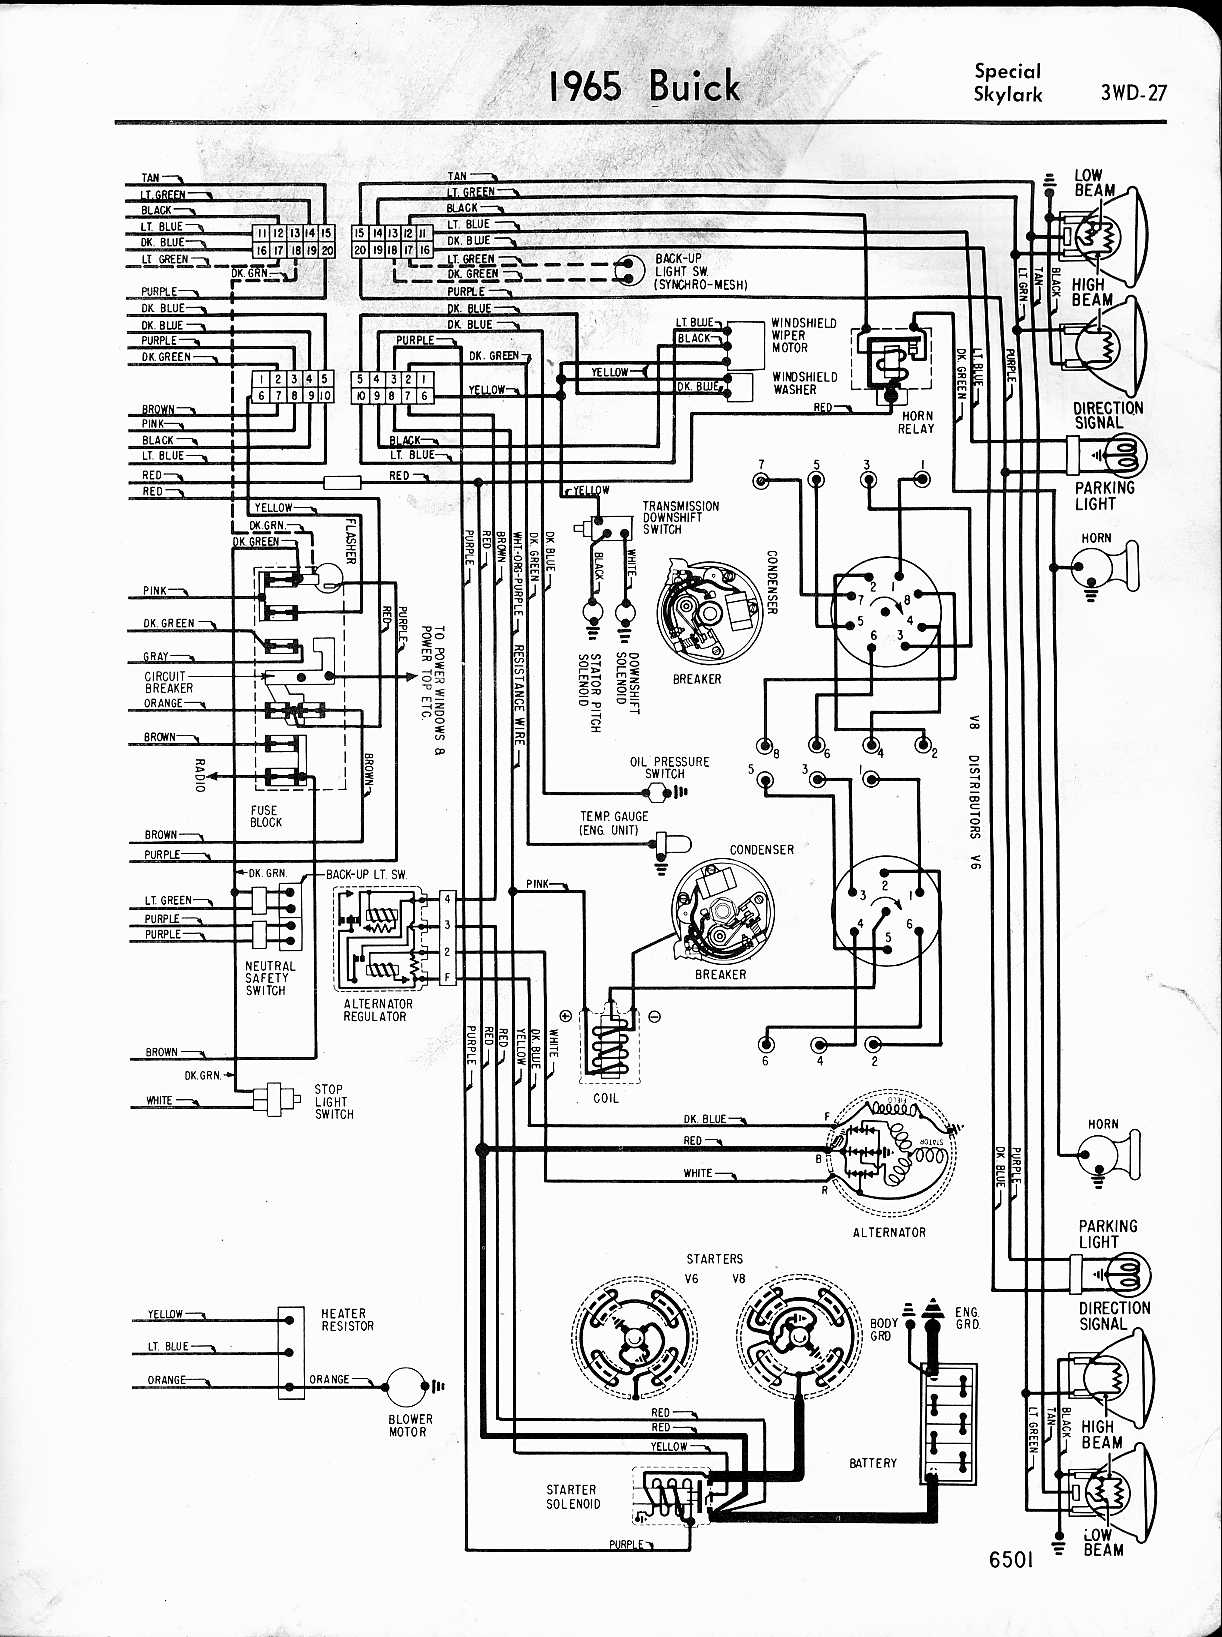 Buick Engine Wiring Diagram - Smart Wiring Diagrams • on corvette vacuum diagram, corvette fuel system diagram, corvette frame diagram, corvette radiator, corvette parts diagram, corvette electrical diagrams, corvette horn diagram, corvette engine diagram, corvette transmission diagram, corvette horn wiring, corvette drivetrain diagram, 1974 corvette fuse box diagram, corvette starter wiring, corvette car diagram, lighting diagram, corvette cover, corvette schematics diagrams, corvette alternator wiring, corvette drive shaft, corvette fuse panel diagram,